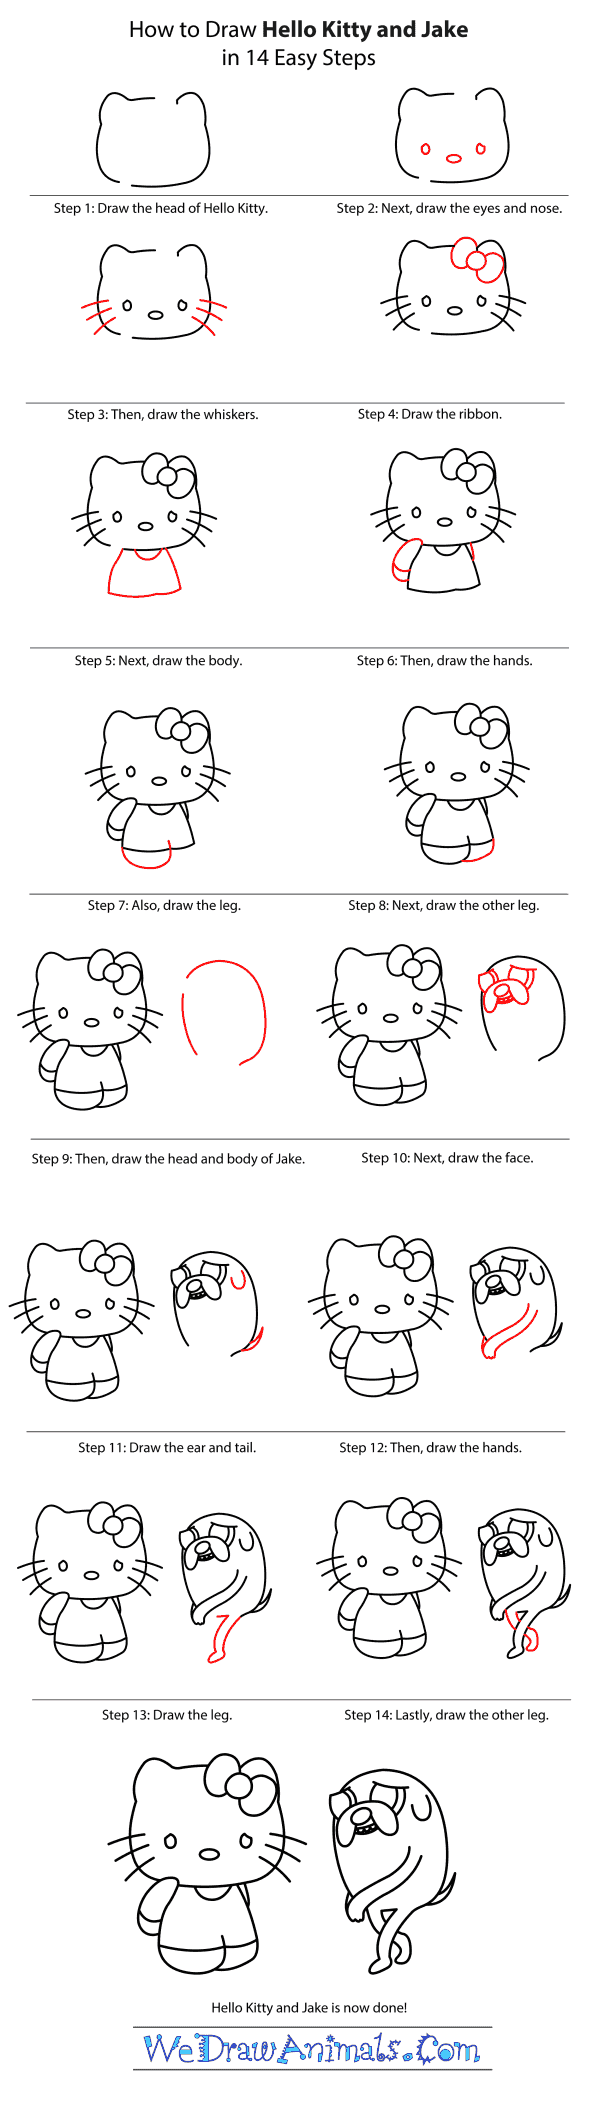 How to Draw Hello Kitty - Step-by-Step Tutorial